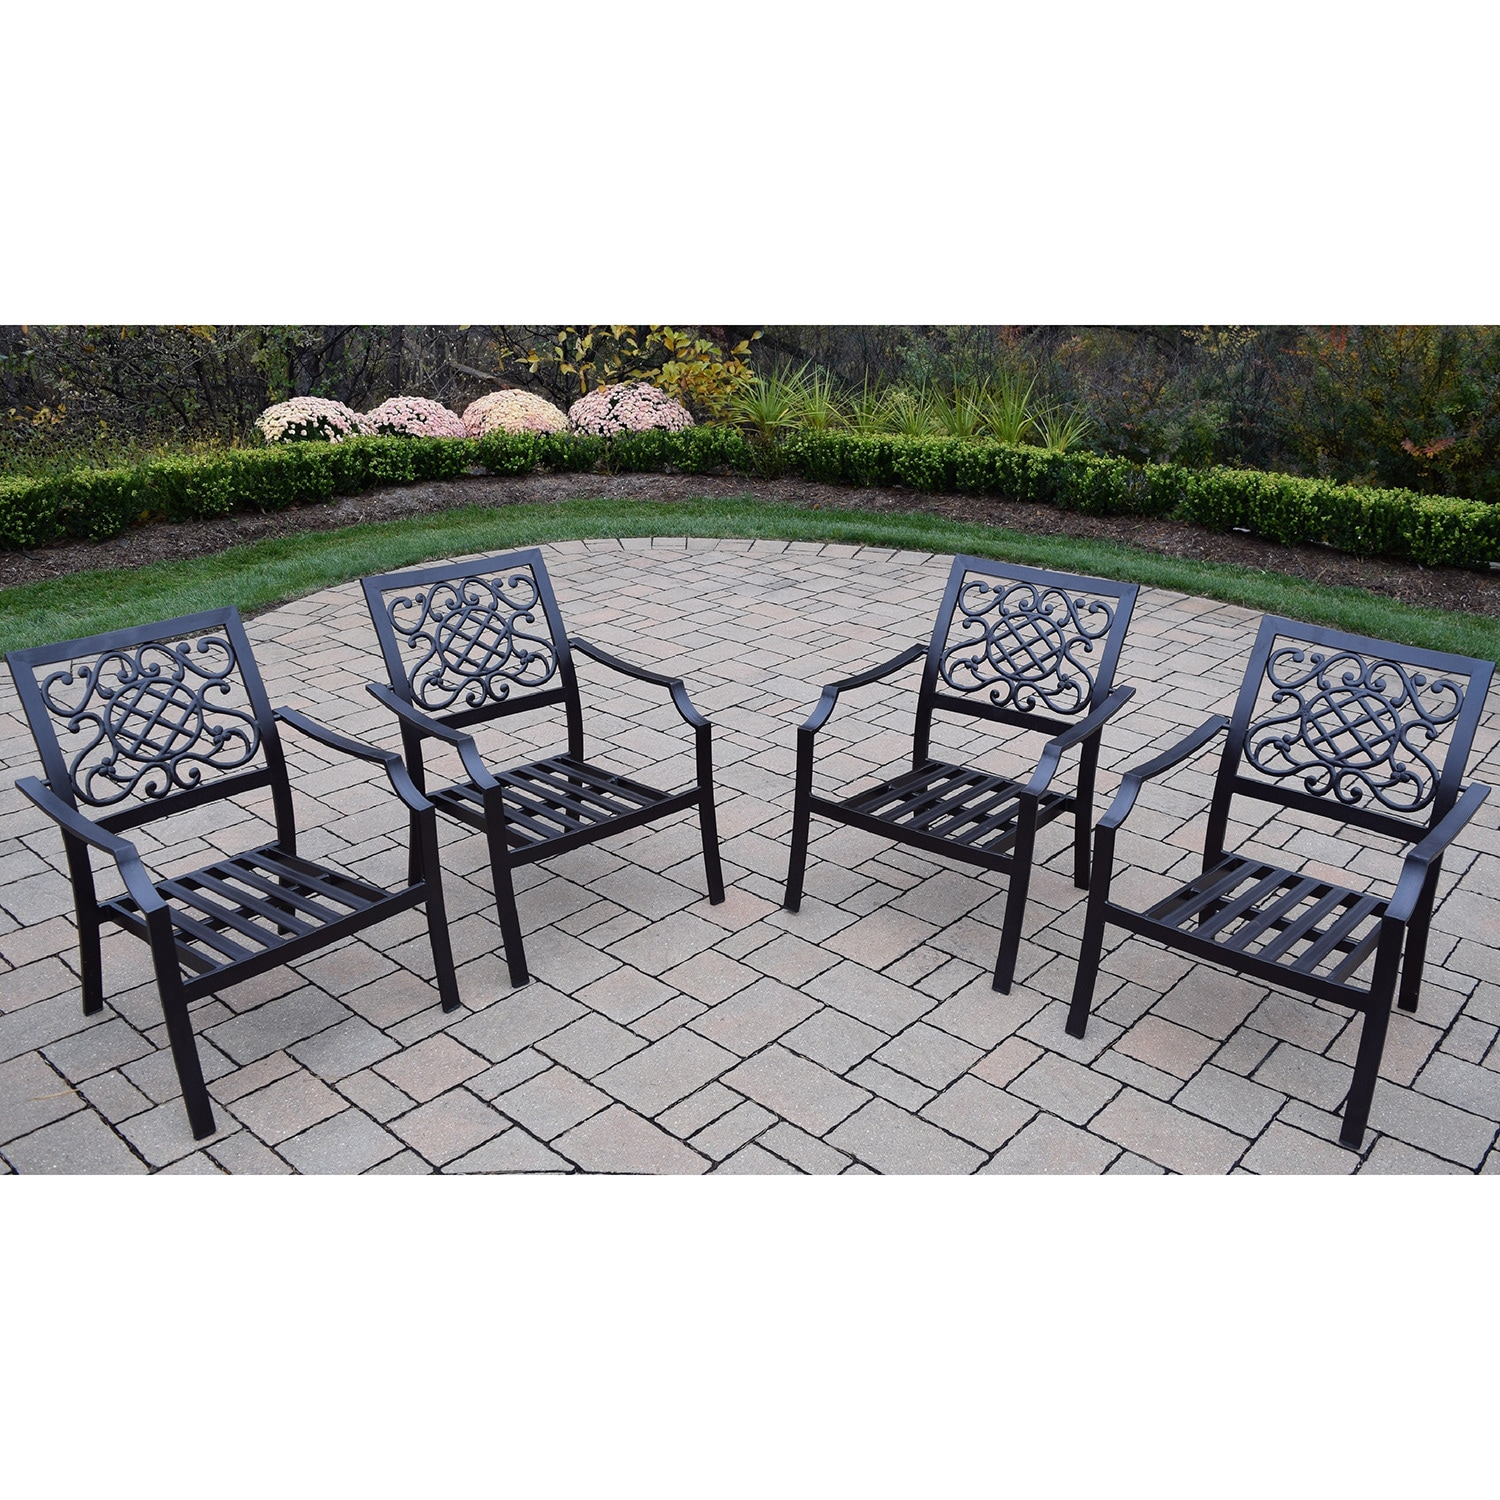 Oakland Living Corporation Premium Stackable Aluminum Deep Seating Chat Chairs (Pack of 4)